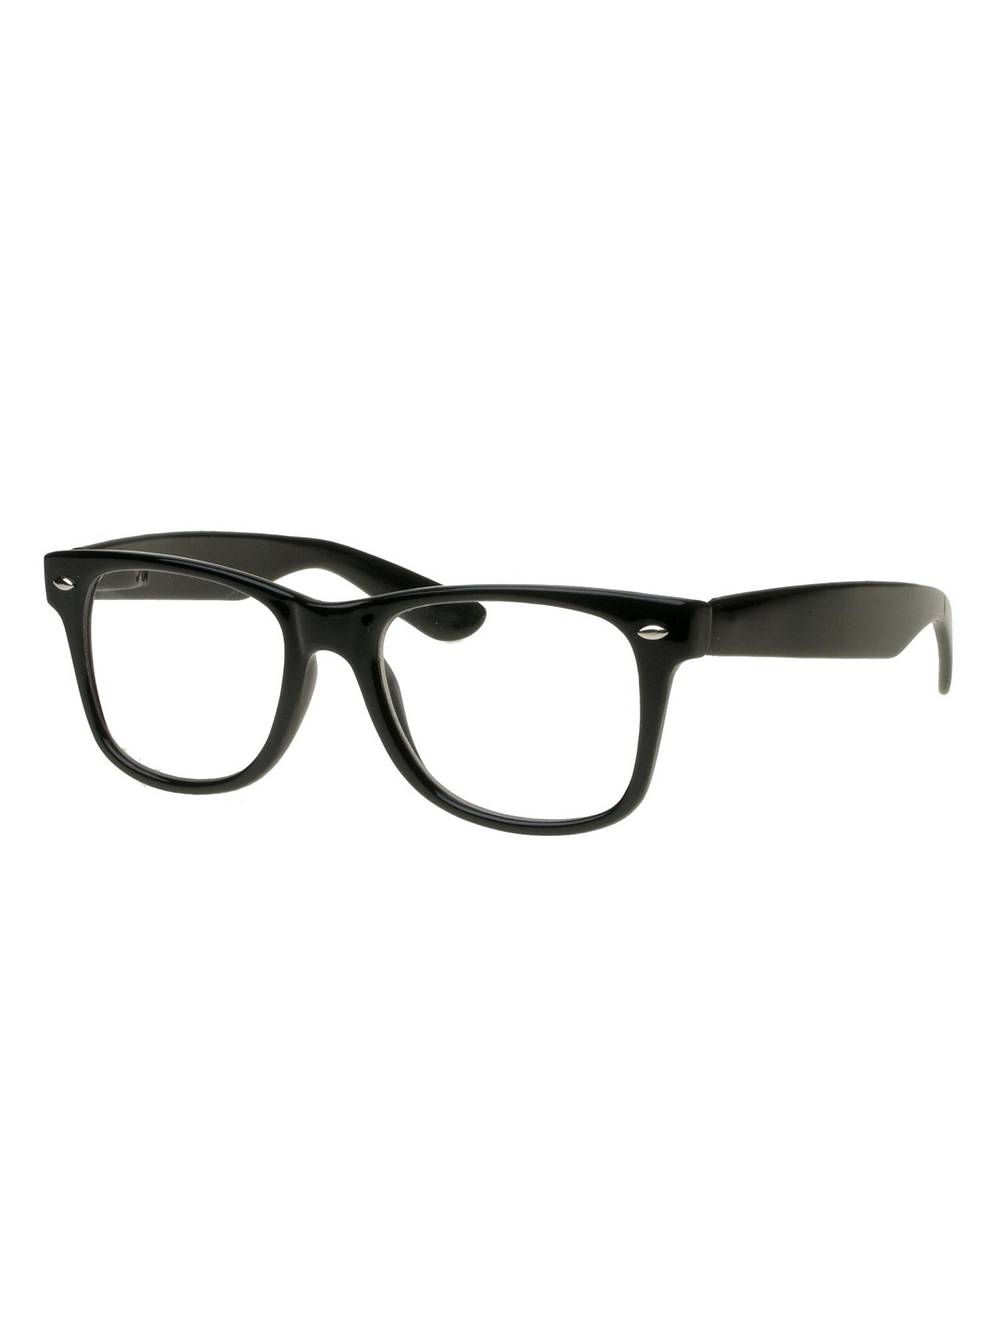 d4d52a918fb8 Glasses   Eyewear in Canada